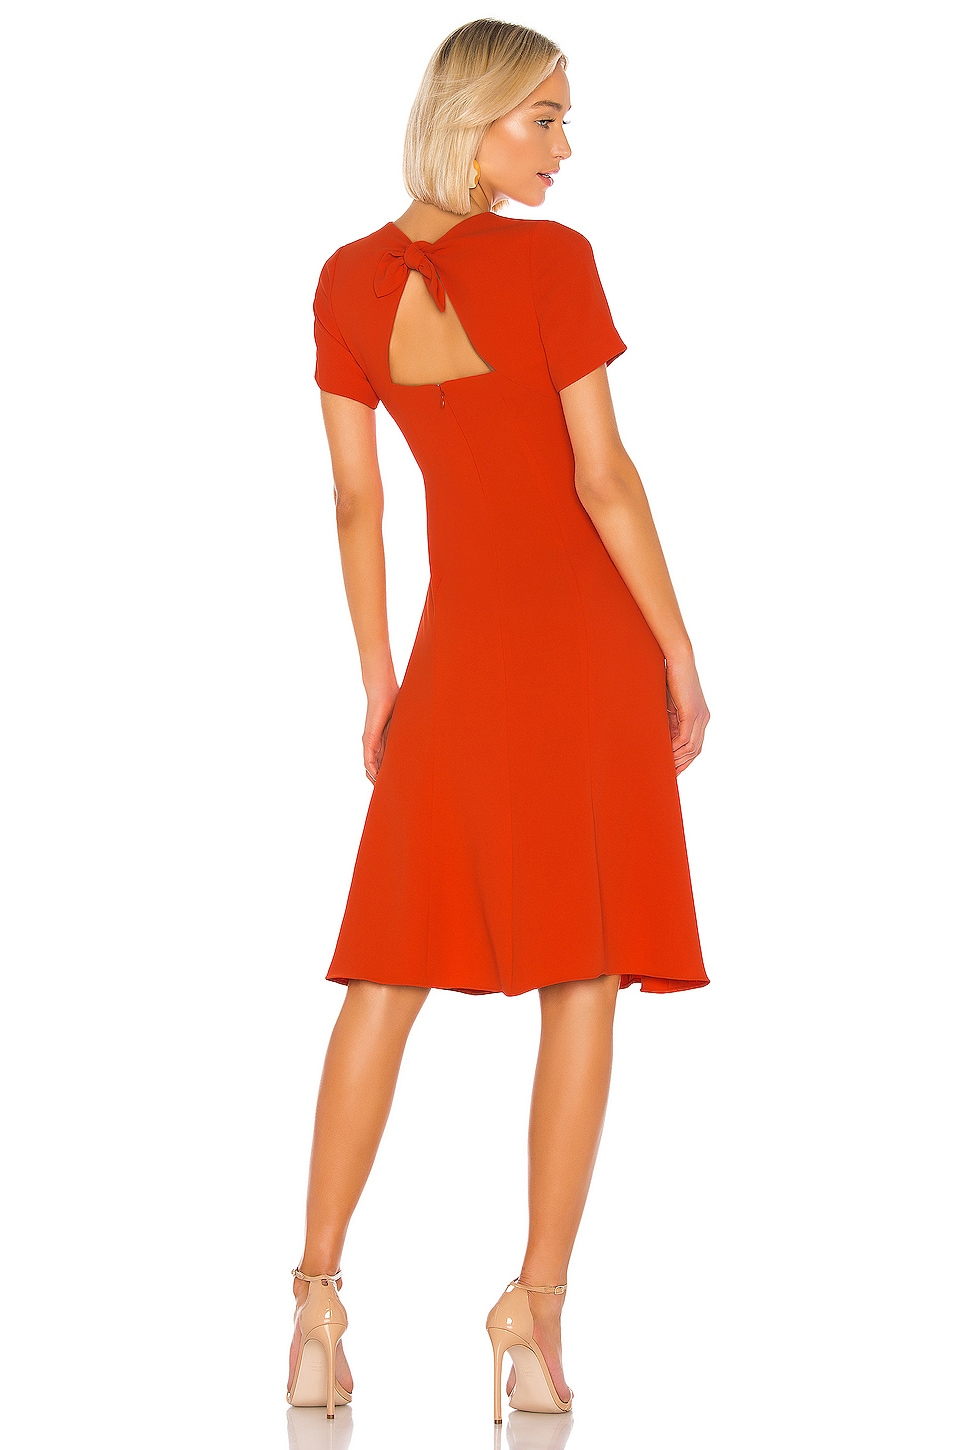 Diane von Furstenberg Rose Dress in Spicy Orange